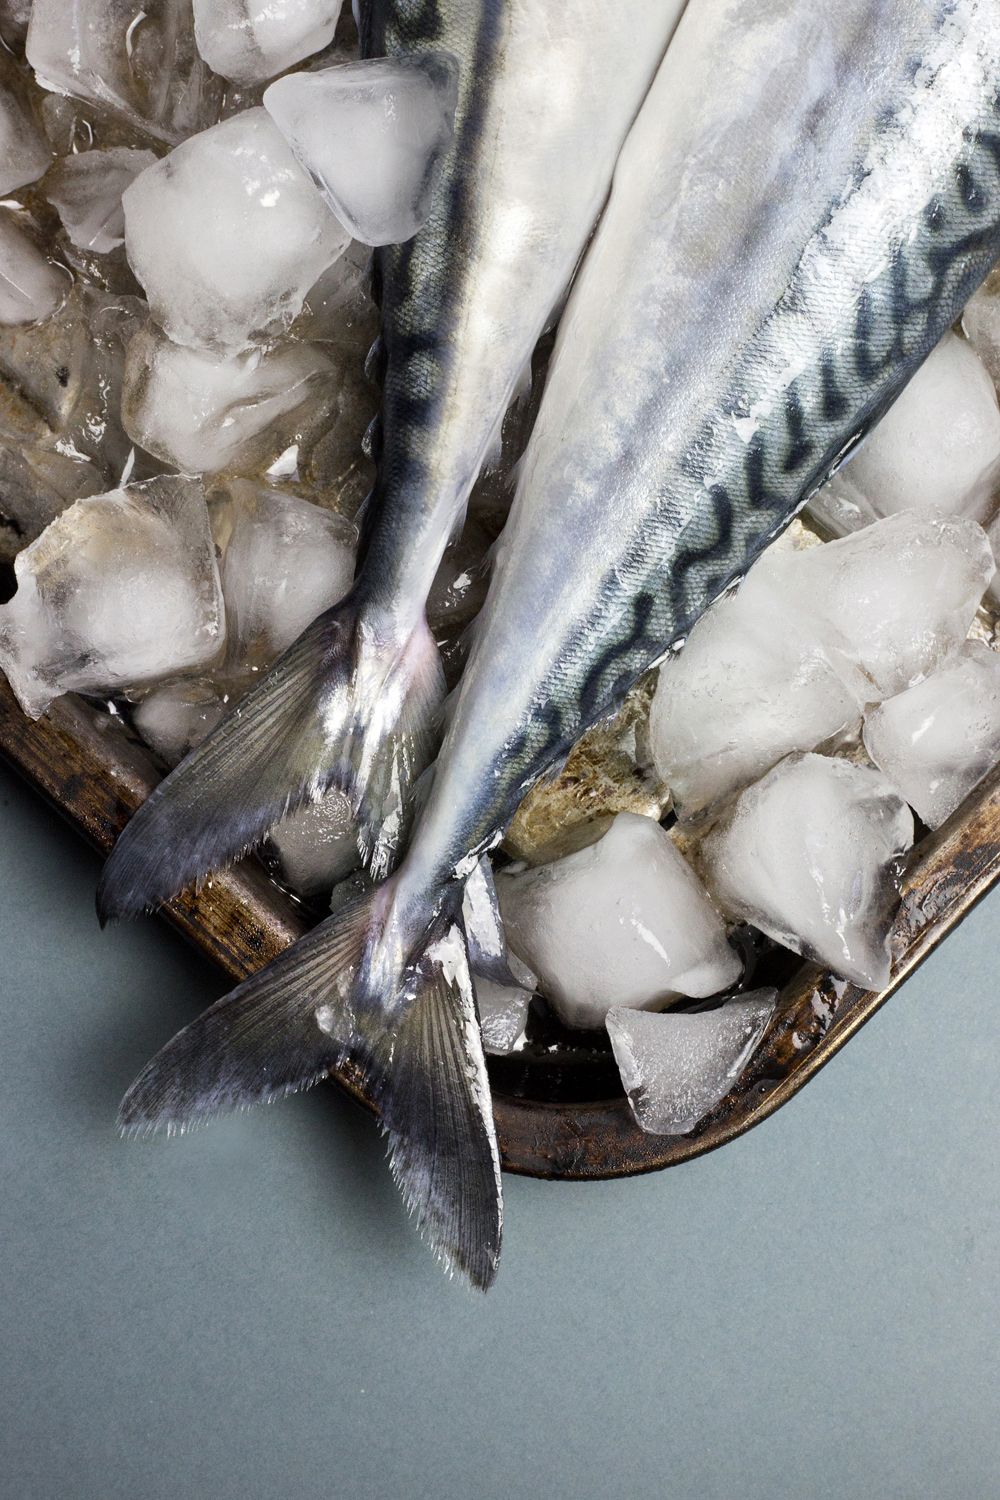 Mackerel, fish, food photography, photographer liverpool, fish scales, fish, ice